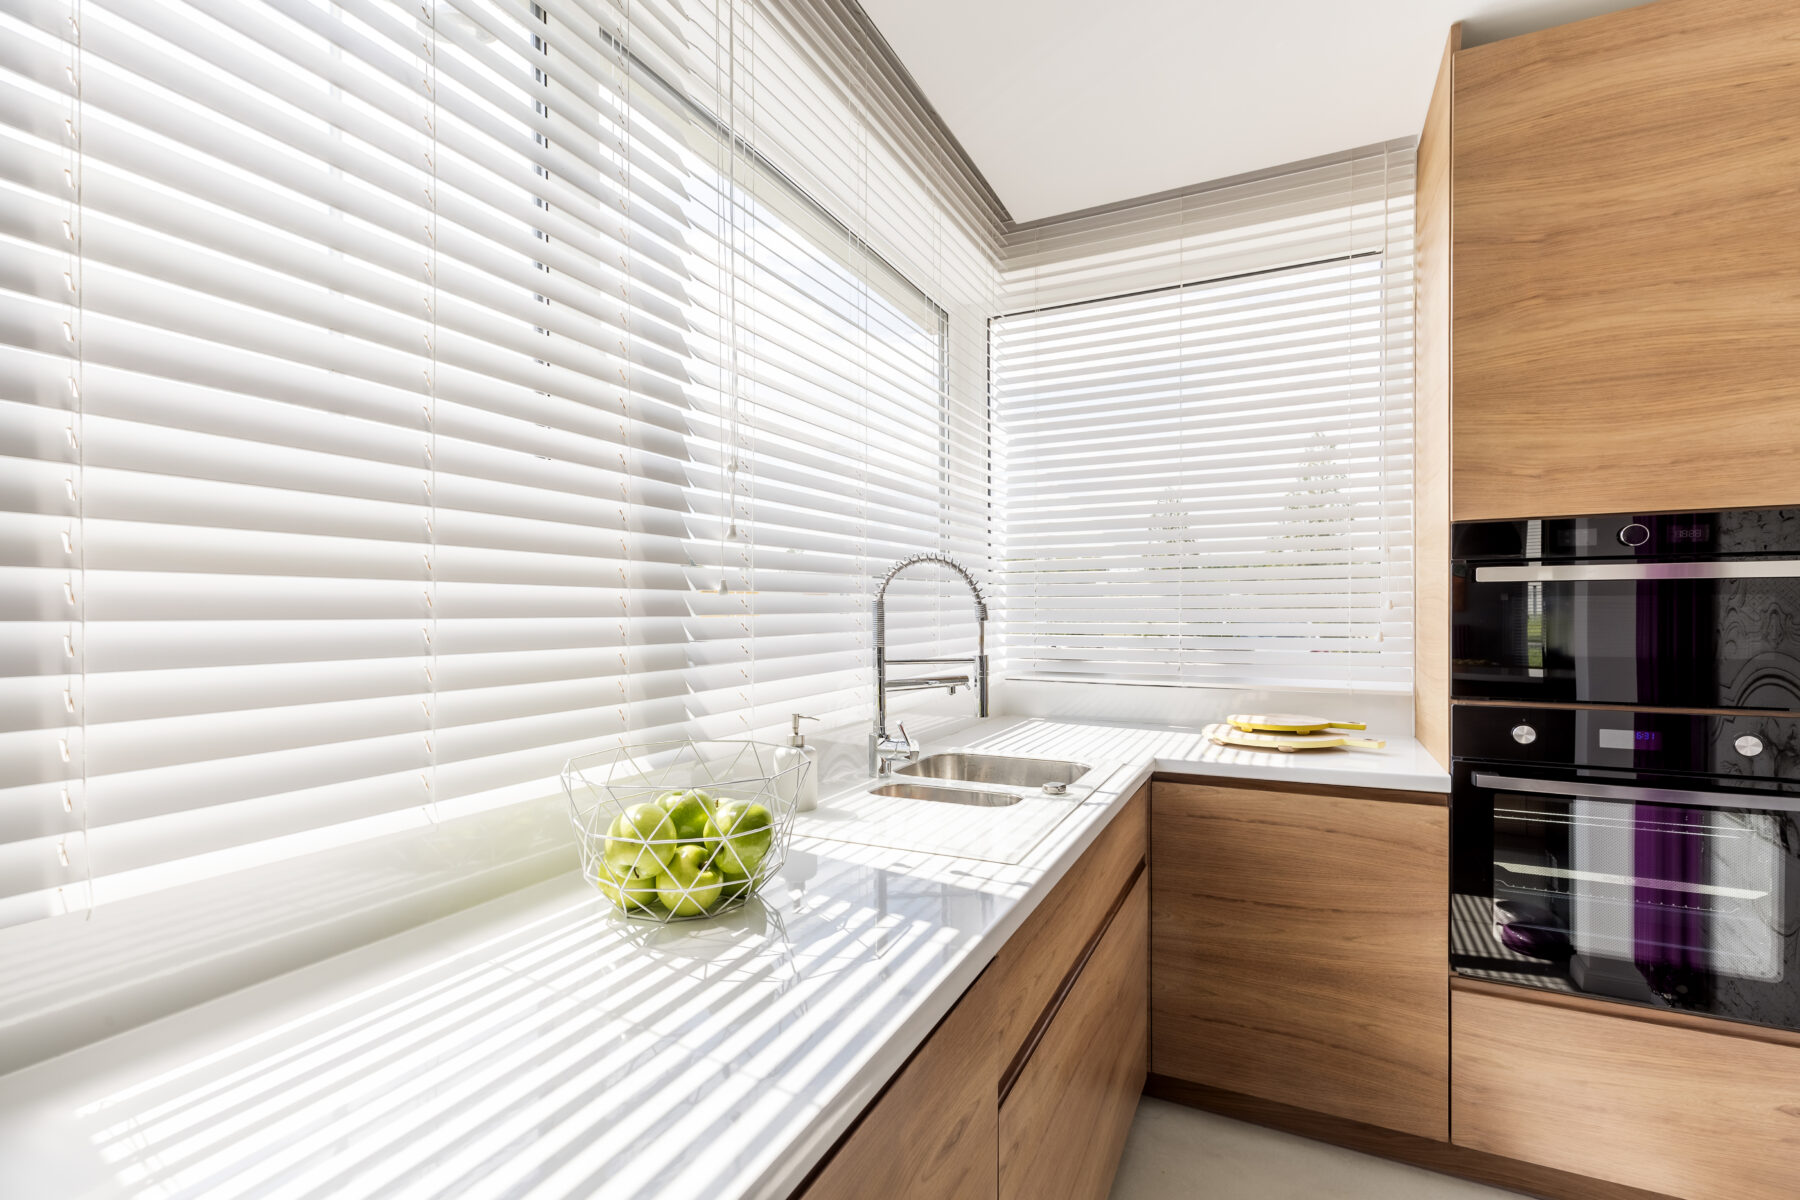 A set of white displayed inside a wooden kitchen suite displayed on a window.